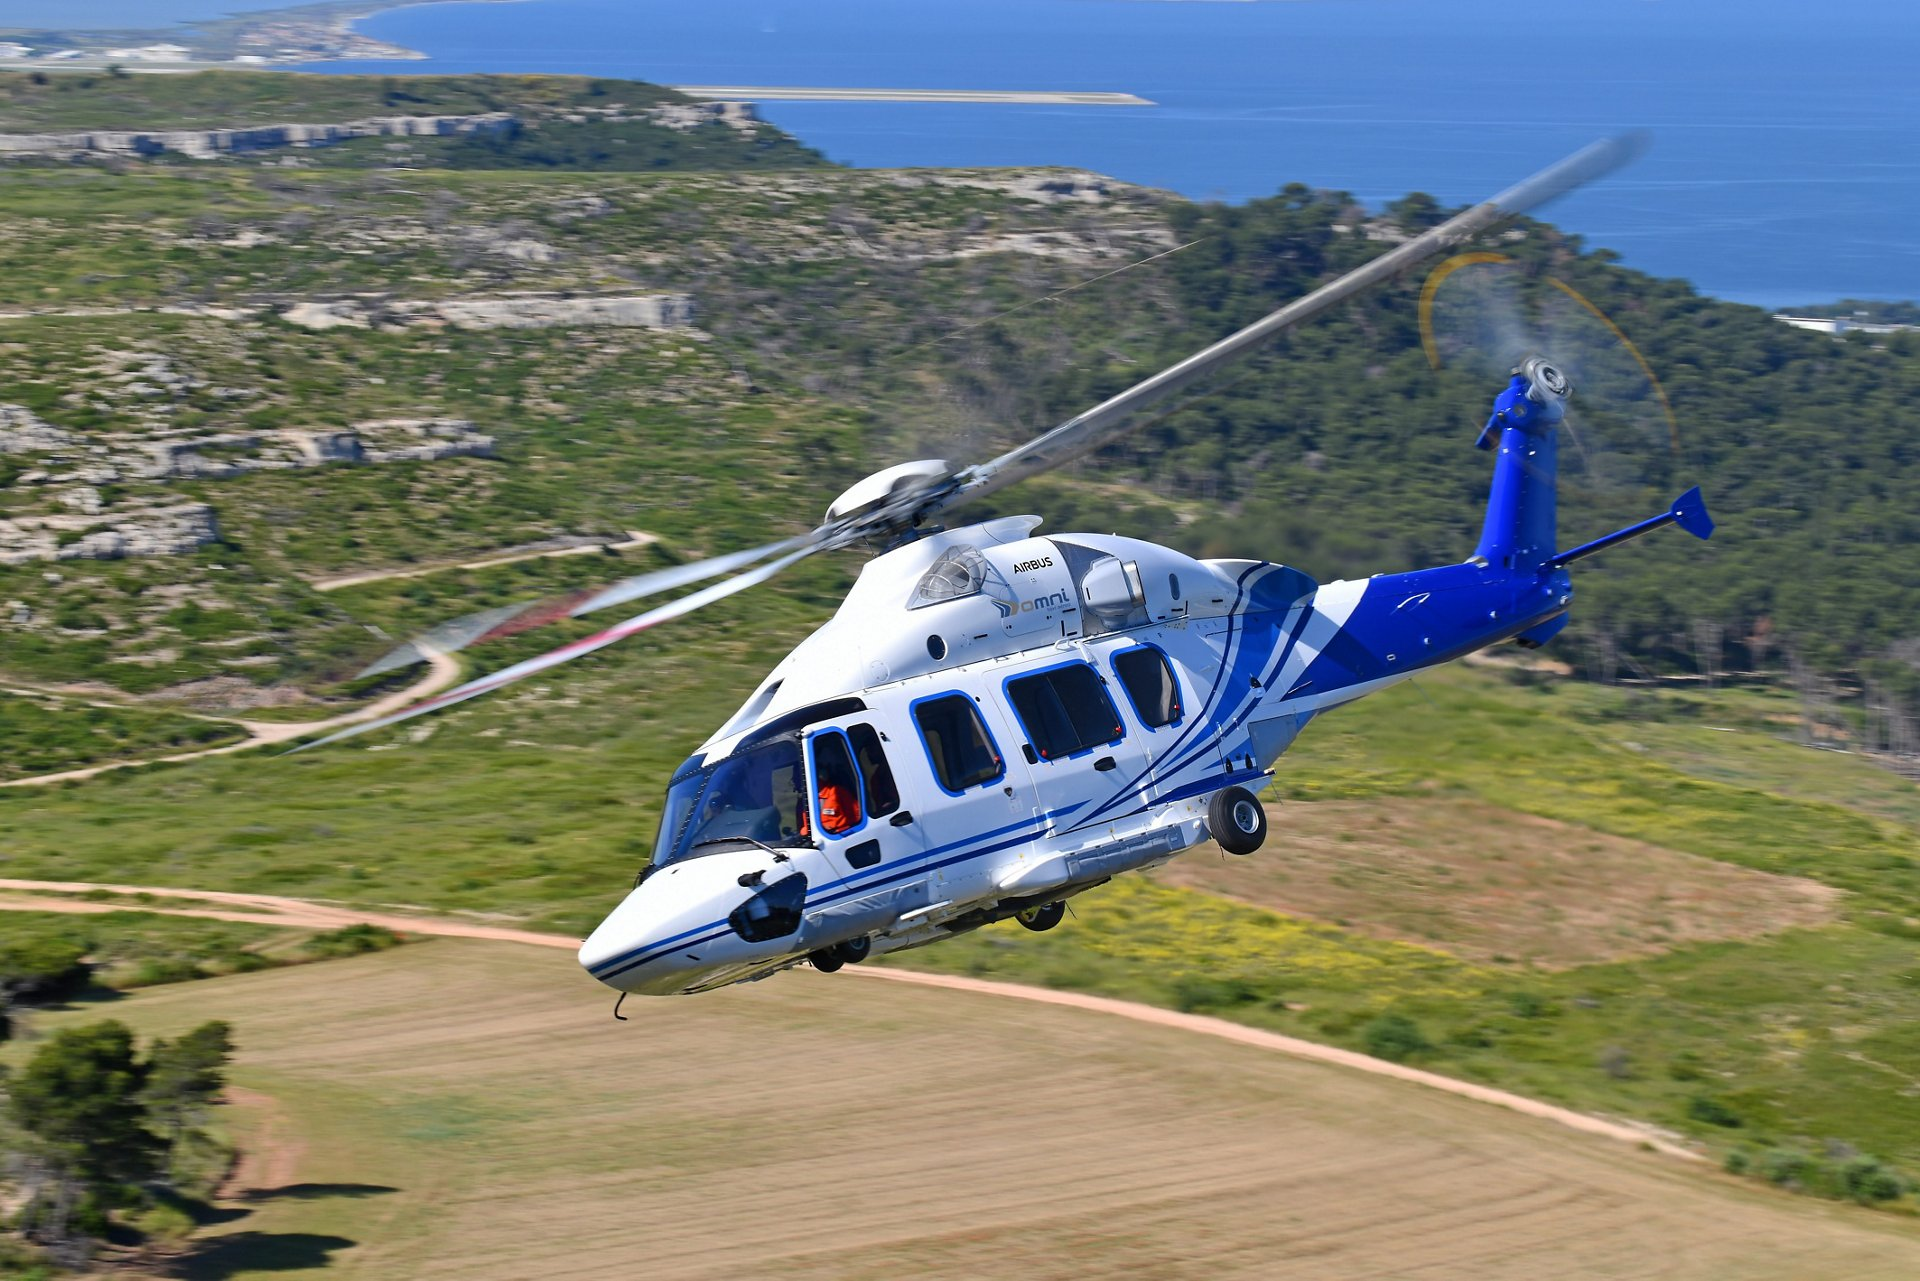 Omni Taxi Aereo, Brazil's leading oil and gas transport company and part of OMNI Helicopters International group (OHI), becomes the first operator to introduce the H175 in Brazil.